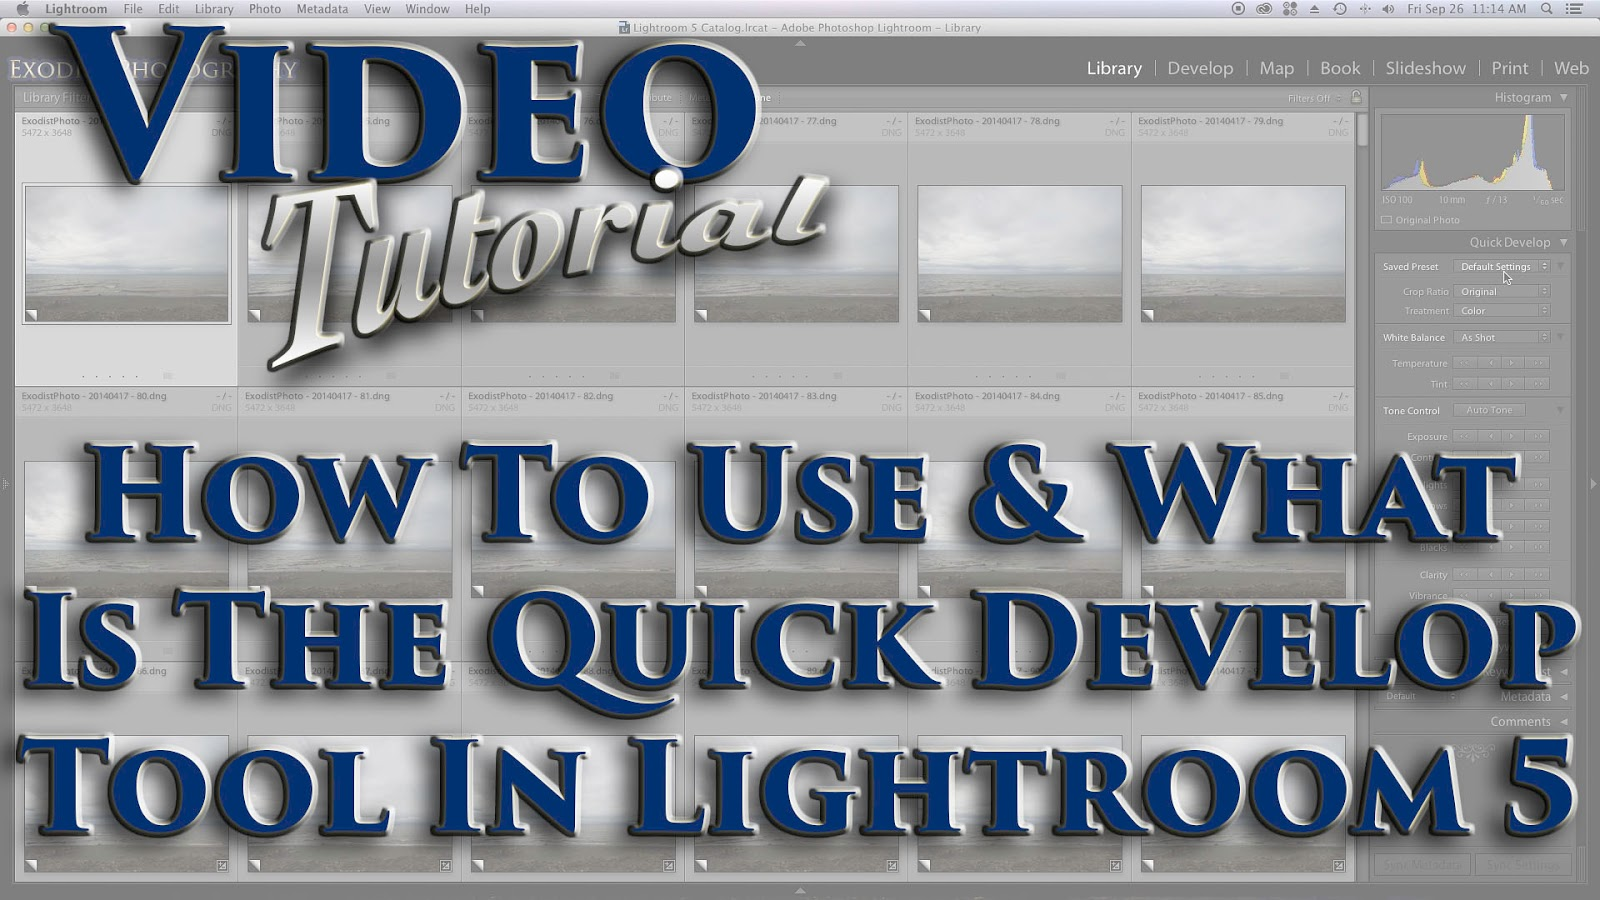 How To Use & What Is The Quick Develop Tool In Lightroom 5